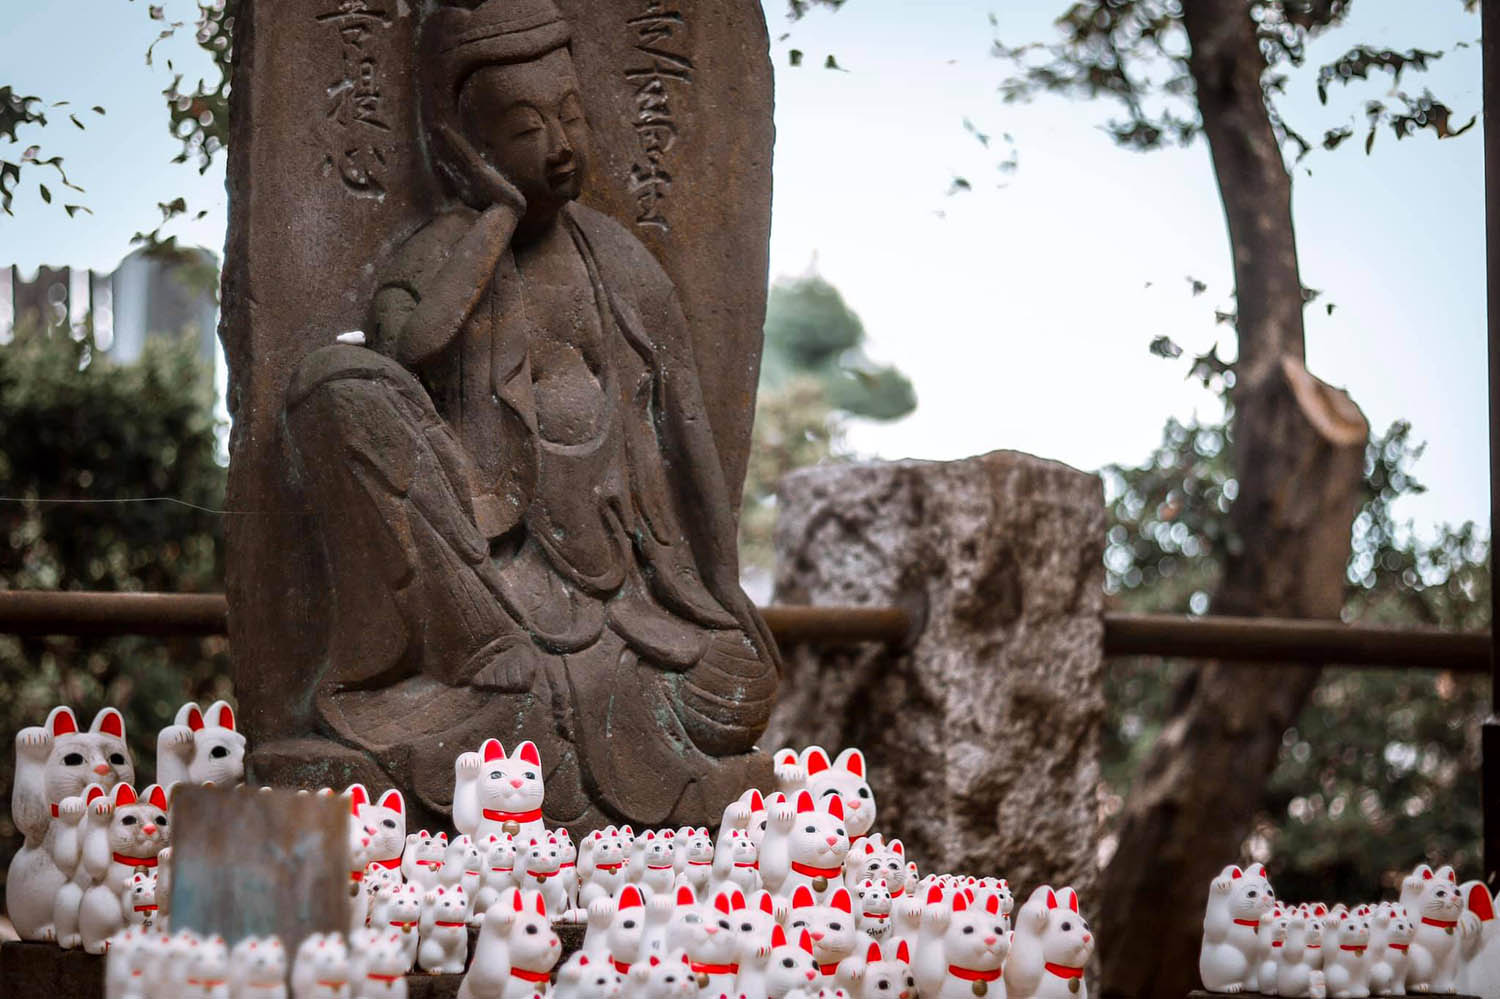 Gotokuji Temple Buddha and Maneki-neko cats